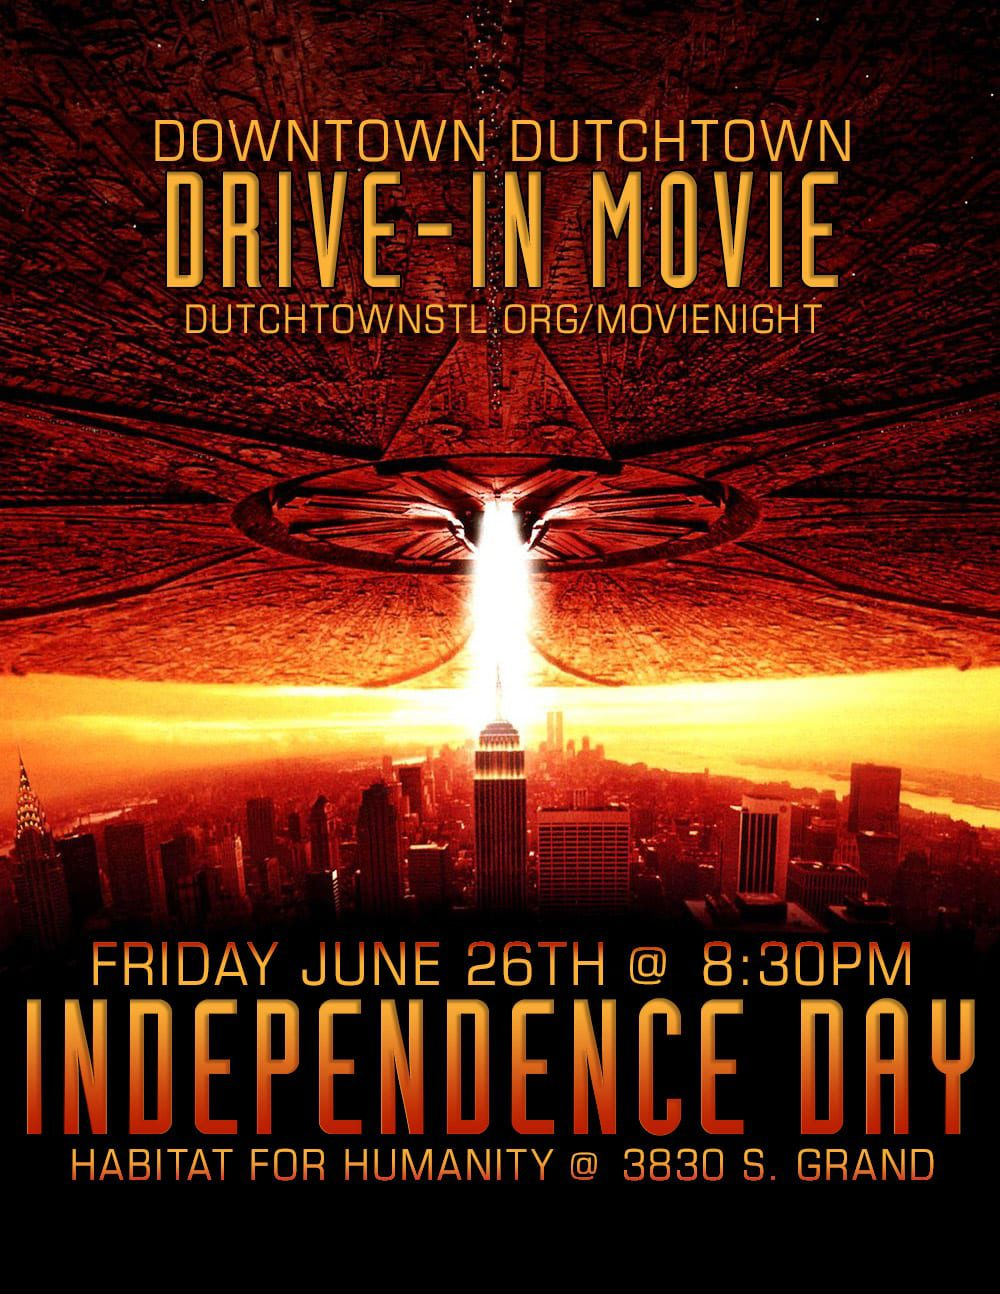 Downtown Dutchtown Drive-In Movie: Friday, June 26th at Habitat for Humanity.